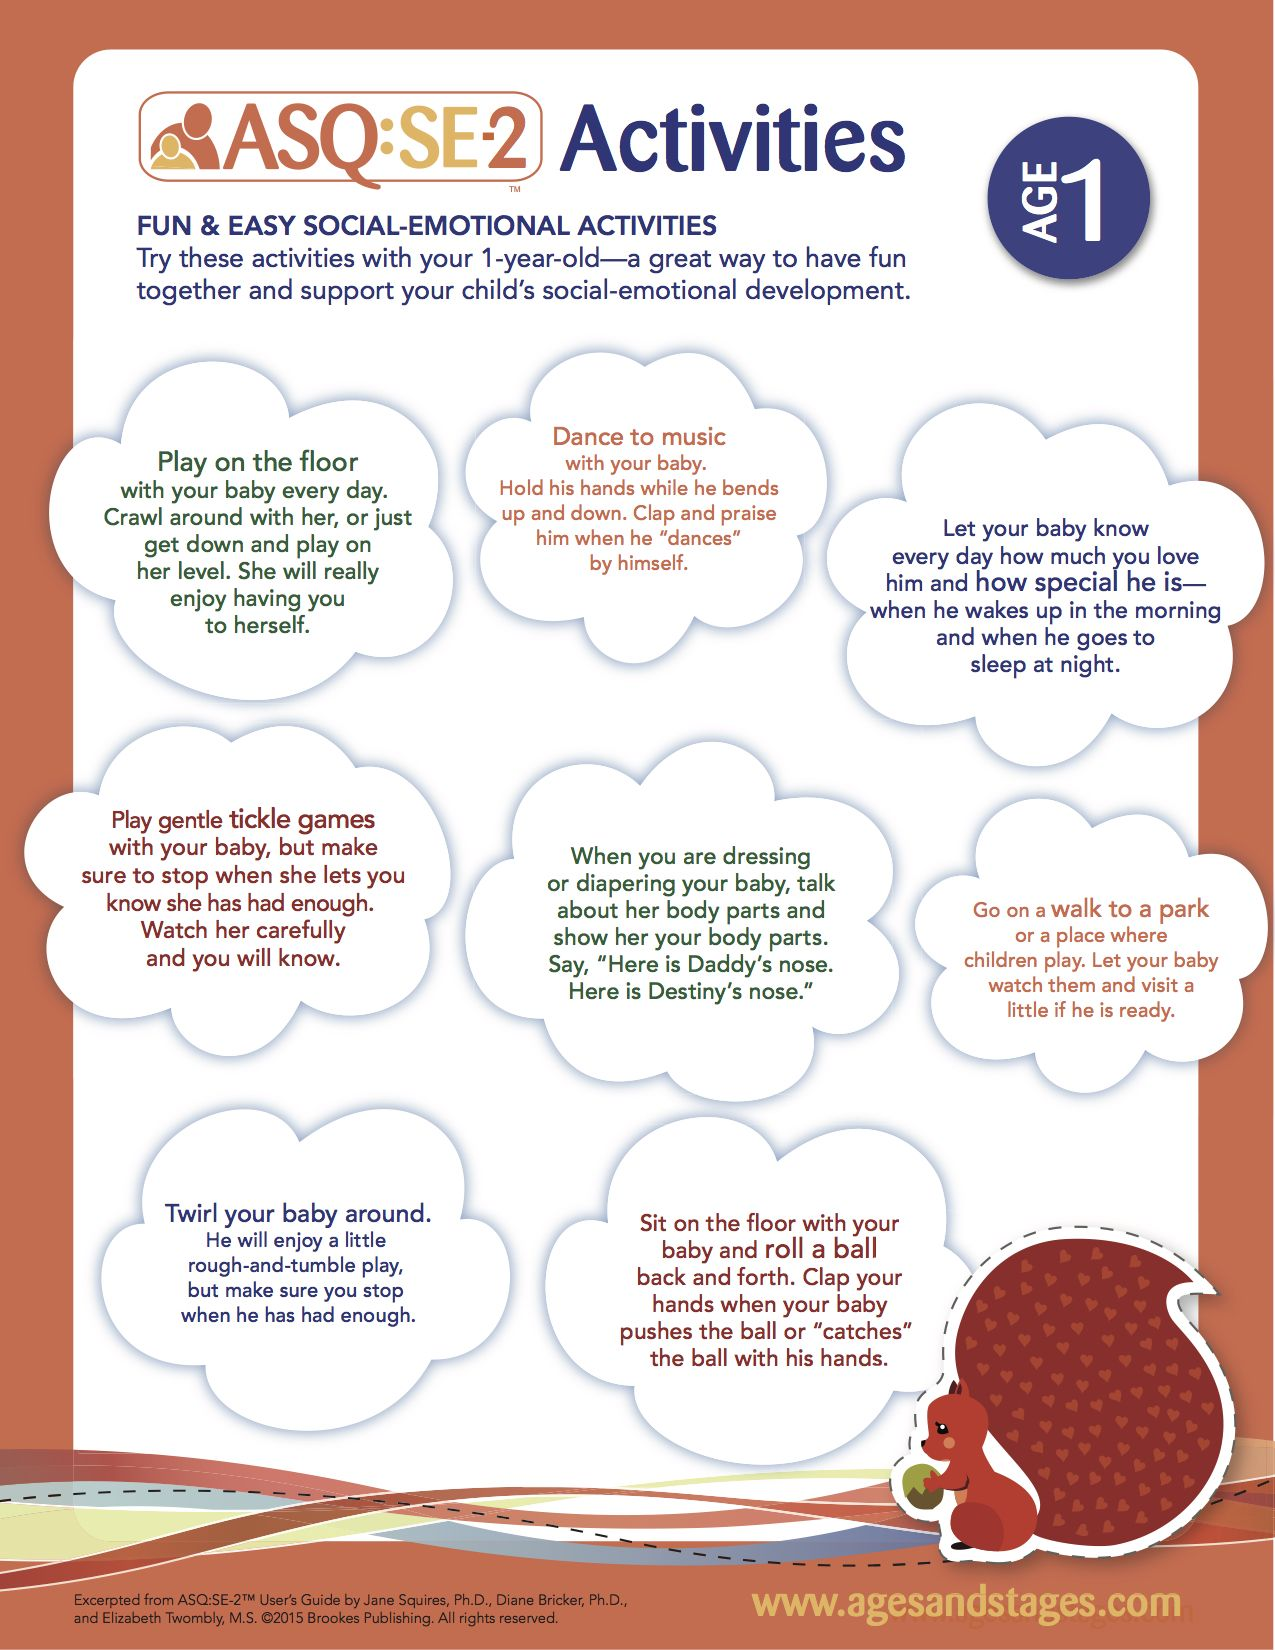 Fun Amp Easy Social Emotional Activities For Your 1 Year Old